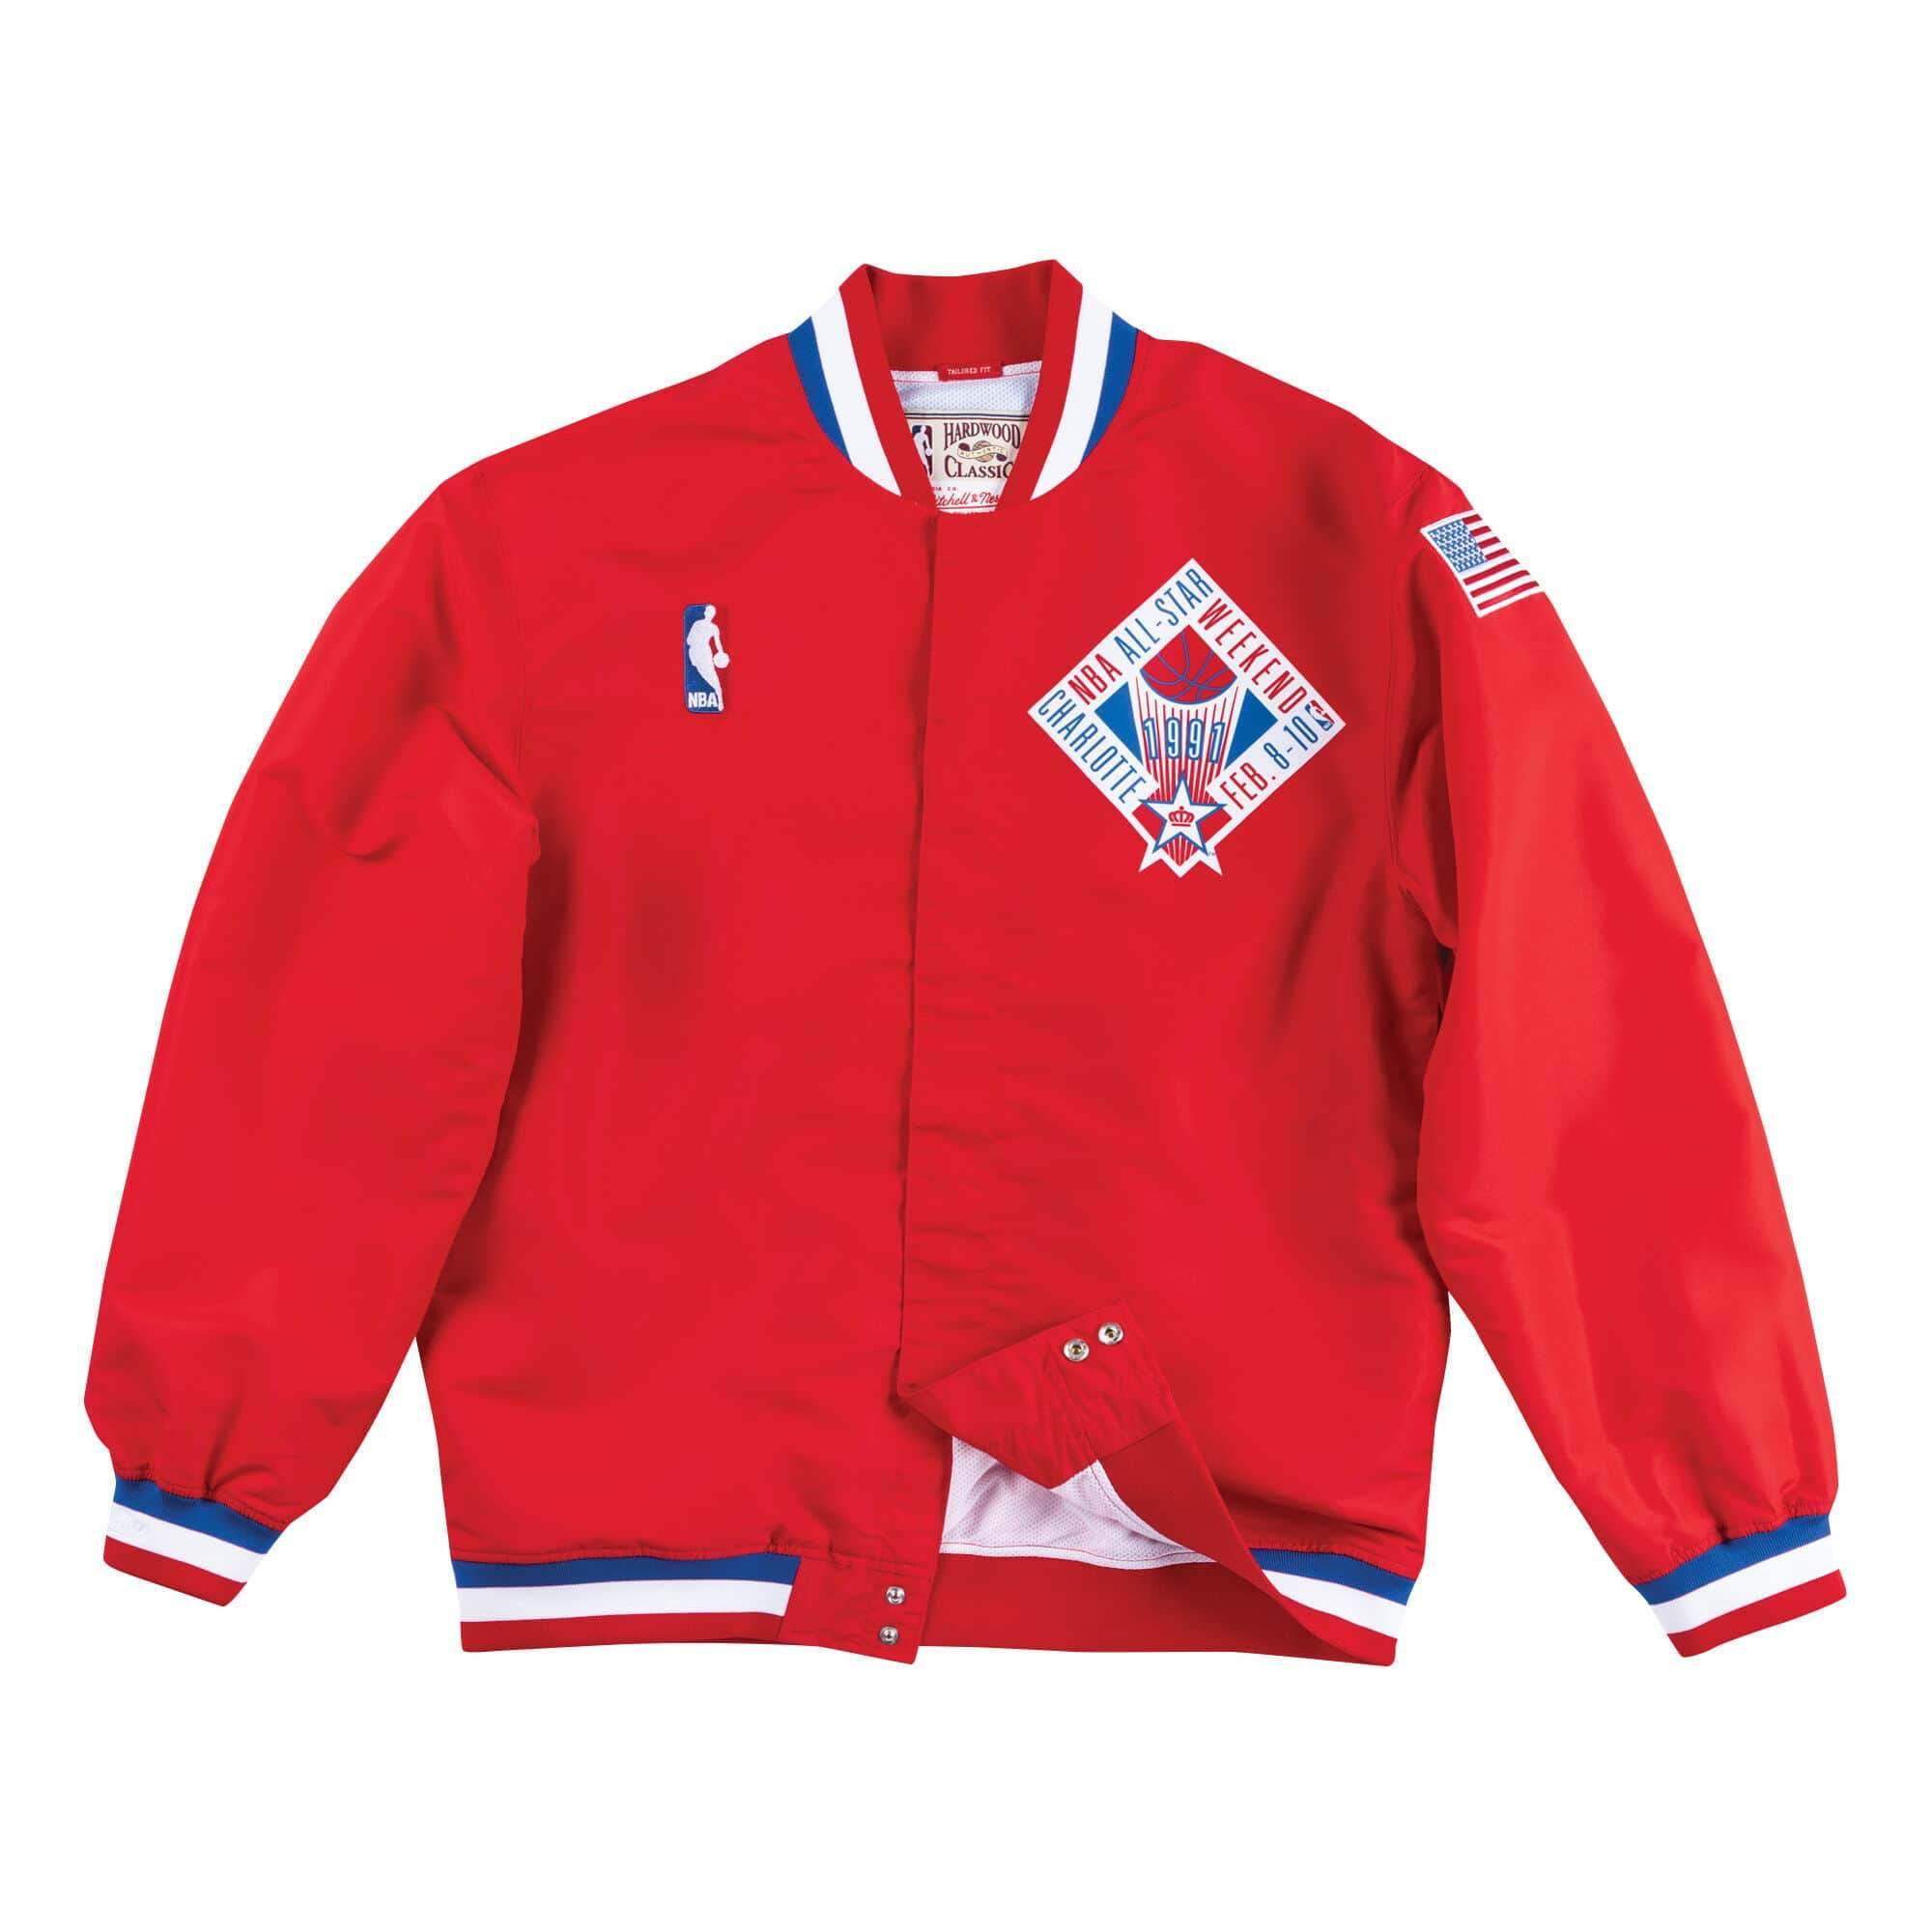 7b470caed0f Mitchell   Ness 1991 NBA All Star Game West Authentic Warm Up Jacket i